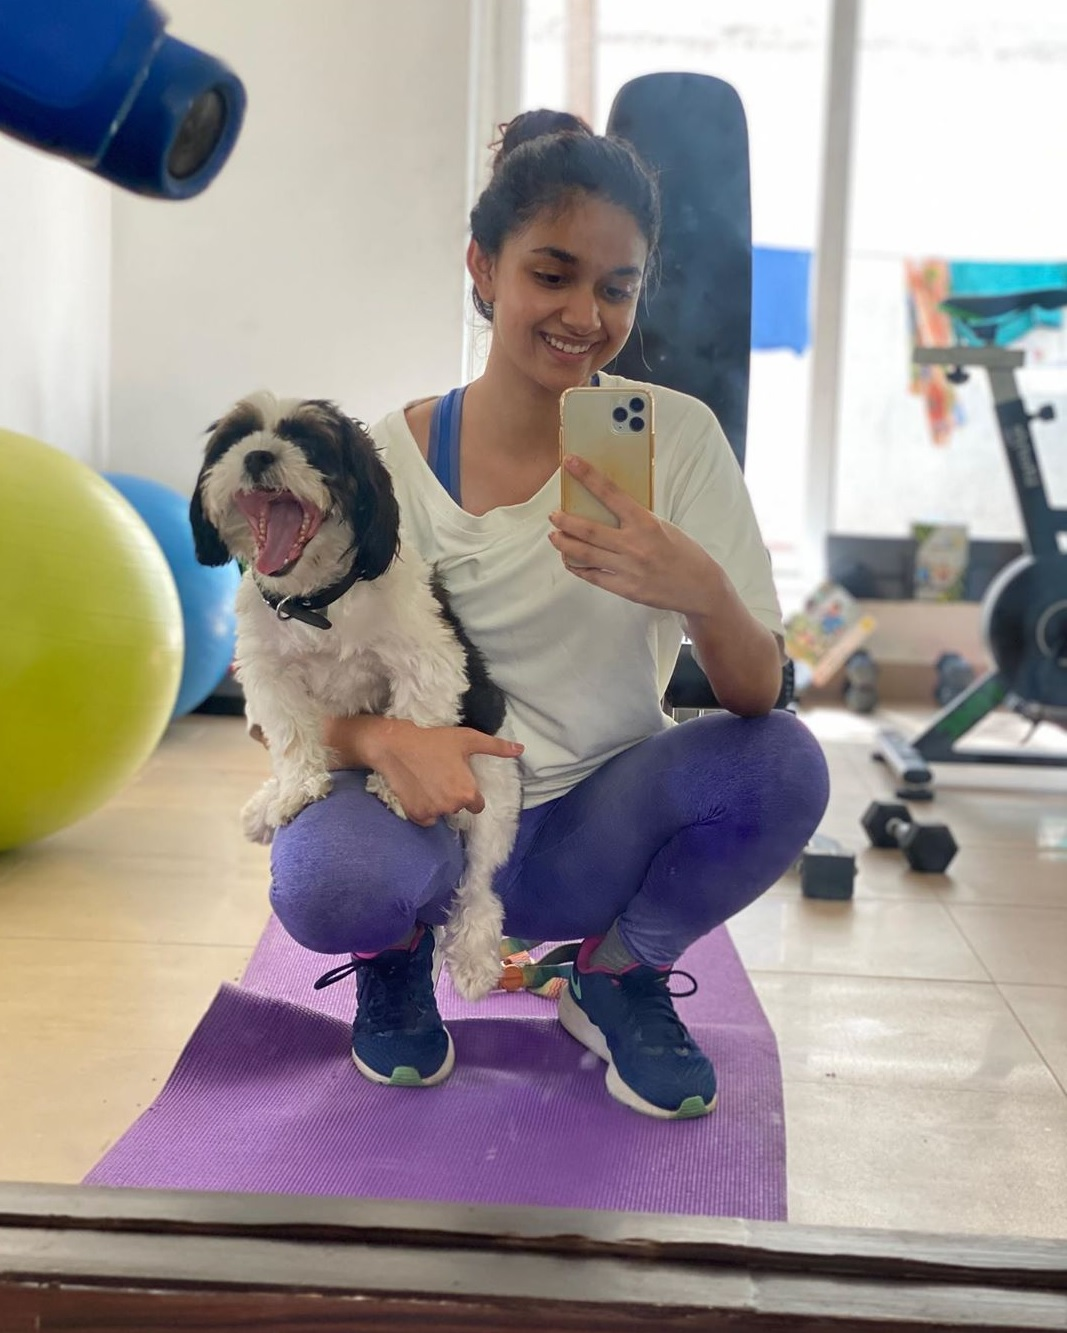 Keerthy Suresh in Blue and White Dress with Cute and Lovely Smile with her Cute Nyke Dog at Gym